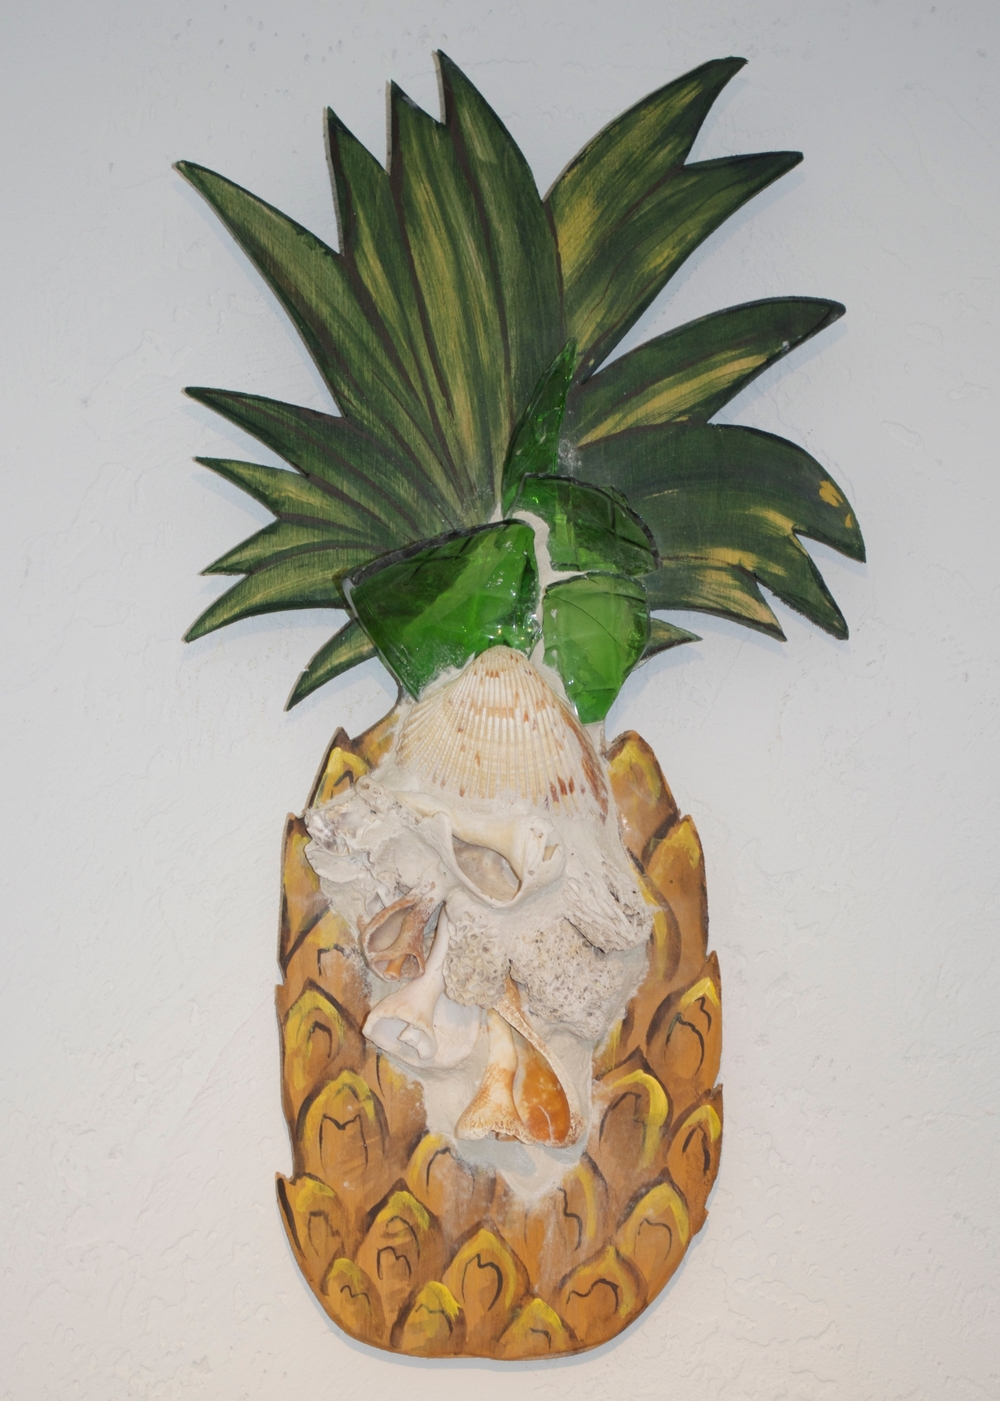 "Beach Art - Pineapple - wood, glass, shells - sm. 6"" x 11"", $44, large 9"" x 21"", $75"